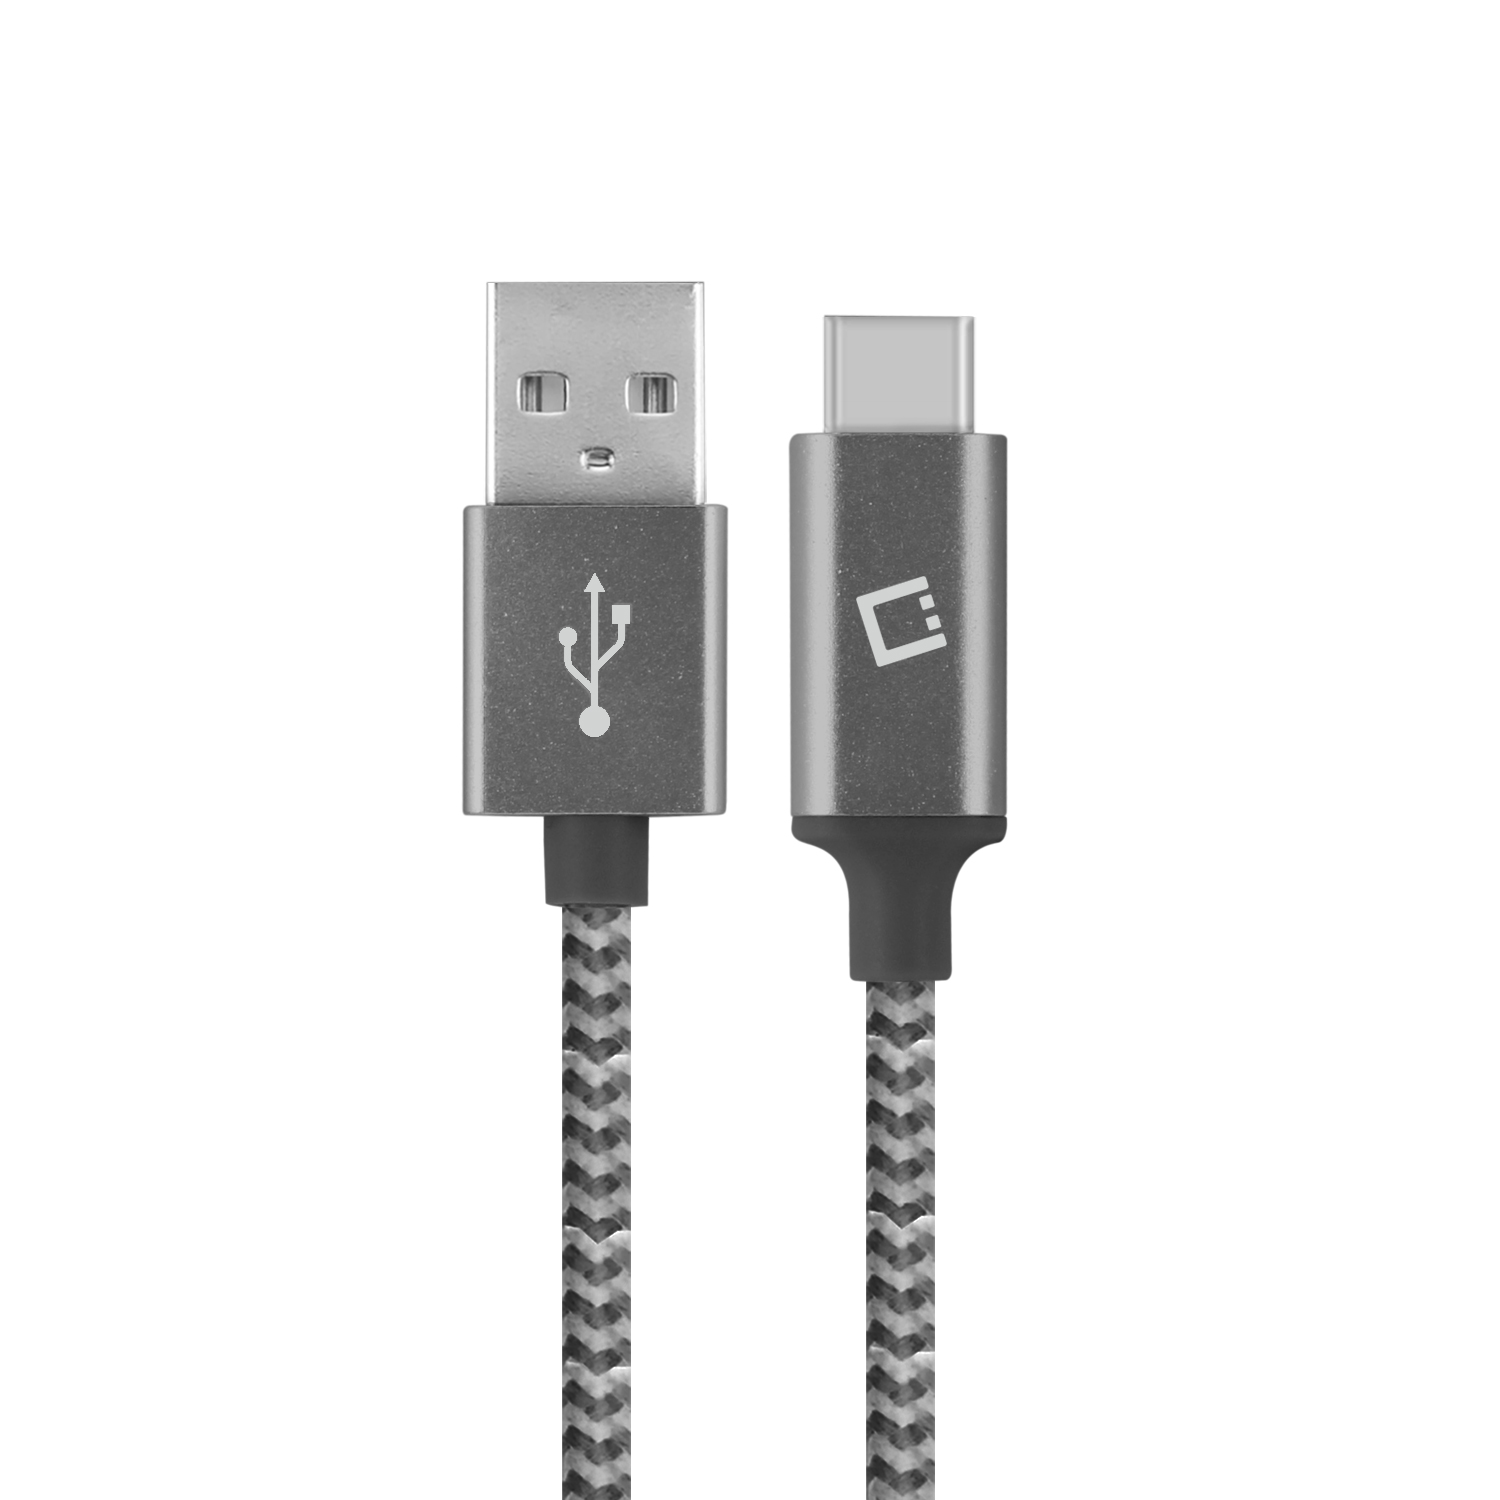 Huawei P9 USB Type-C To Type-A Braided Data Power Cable Black 4ft Round